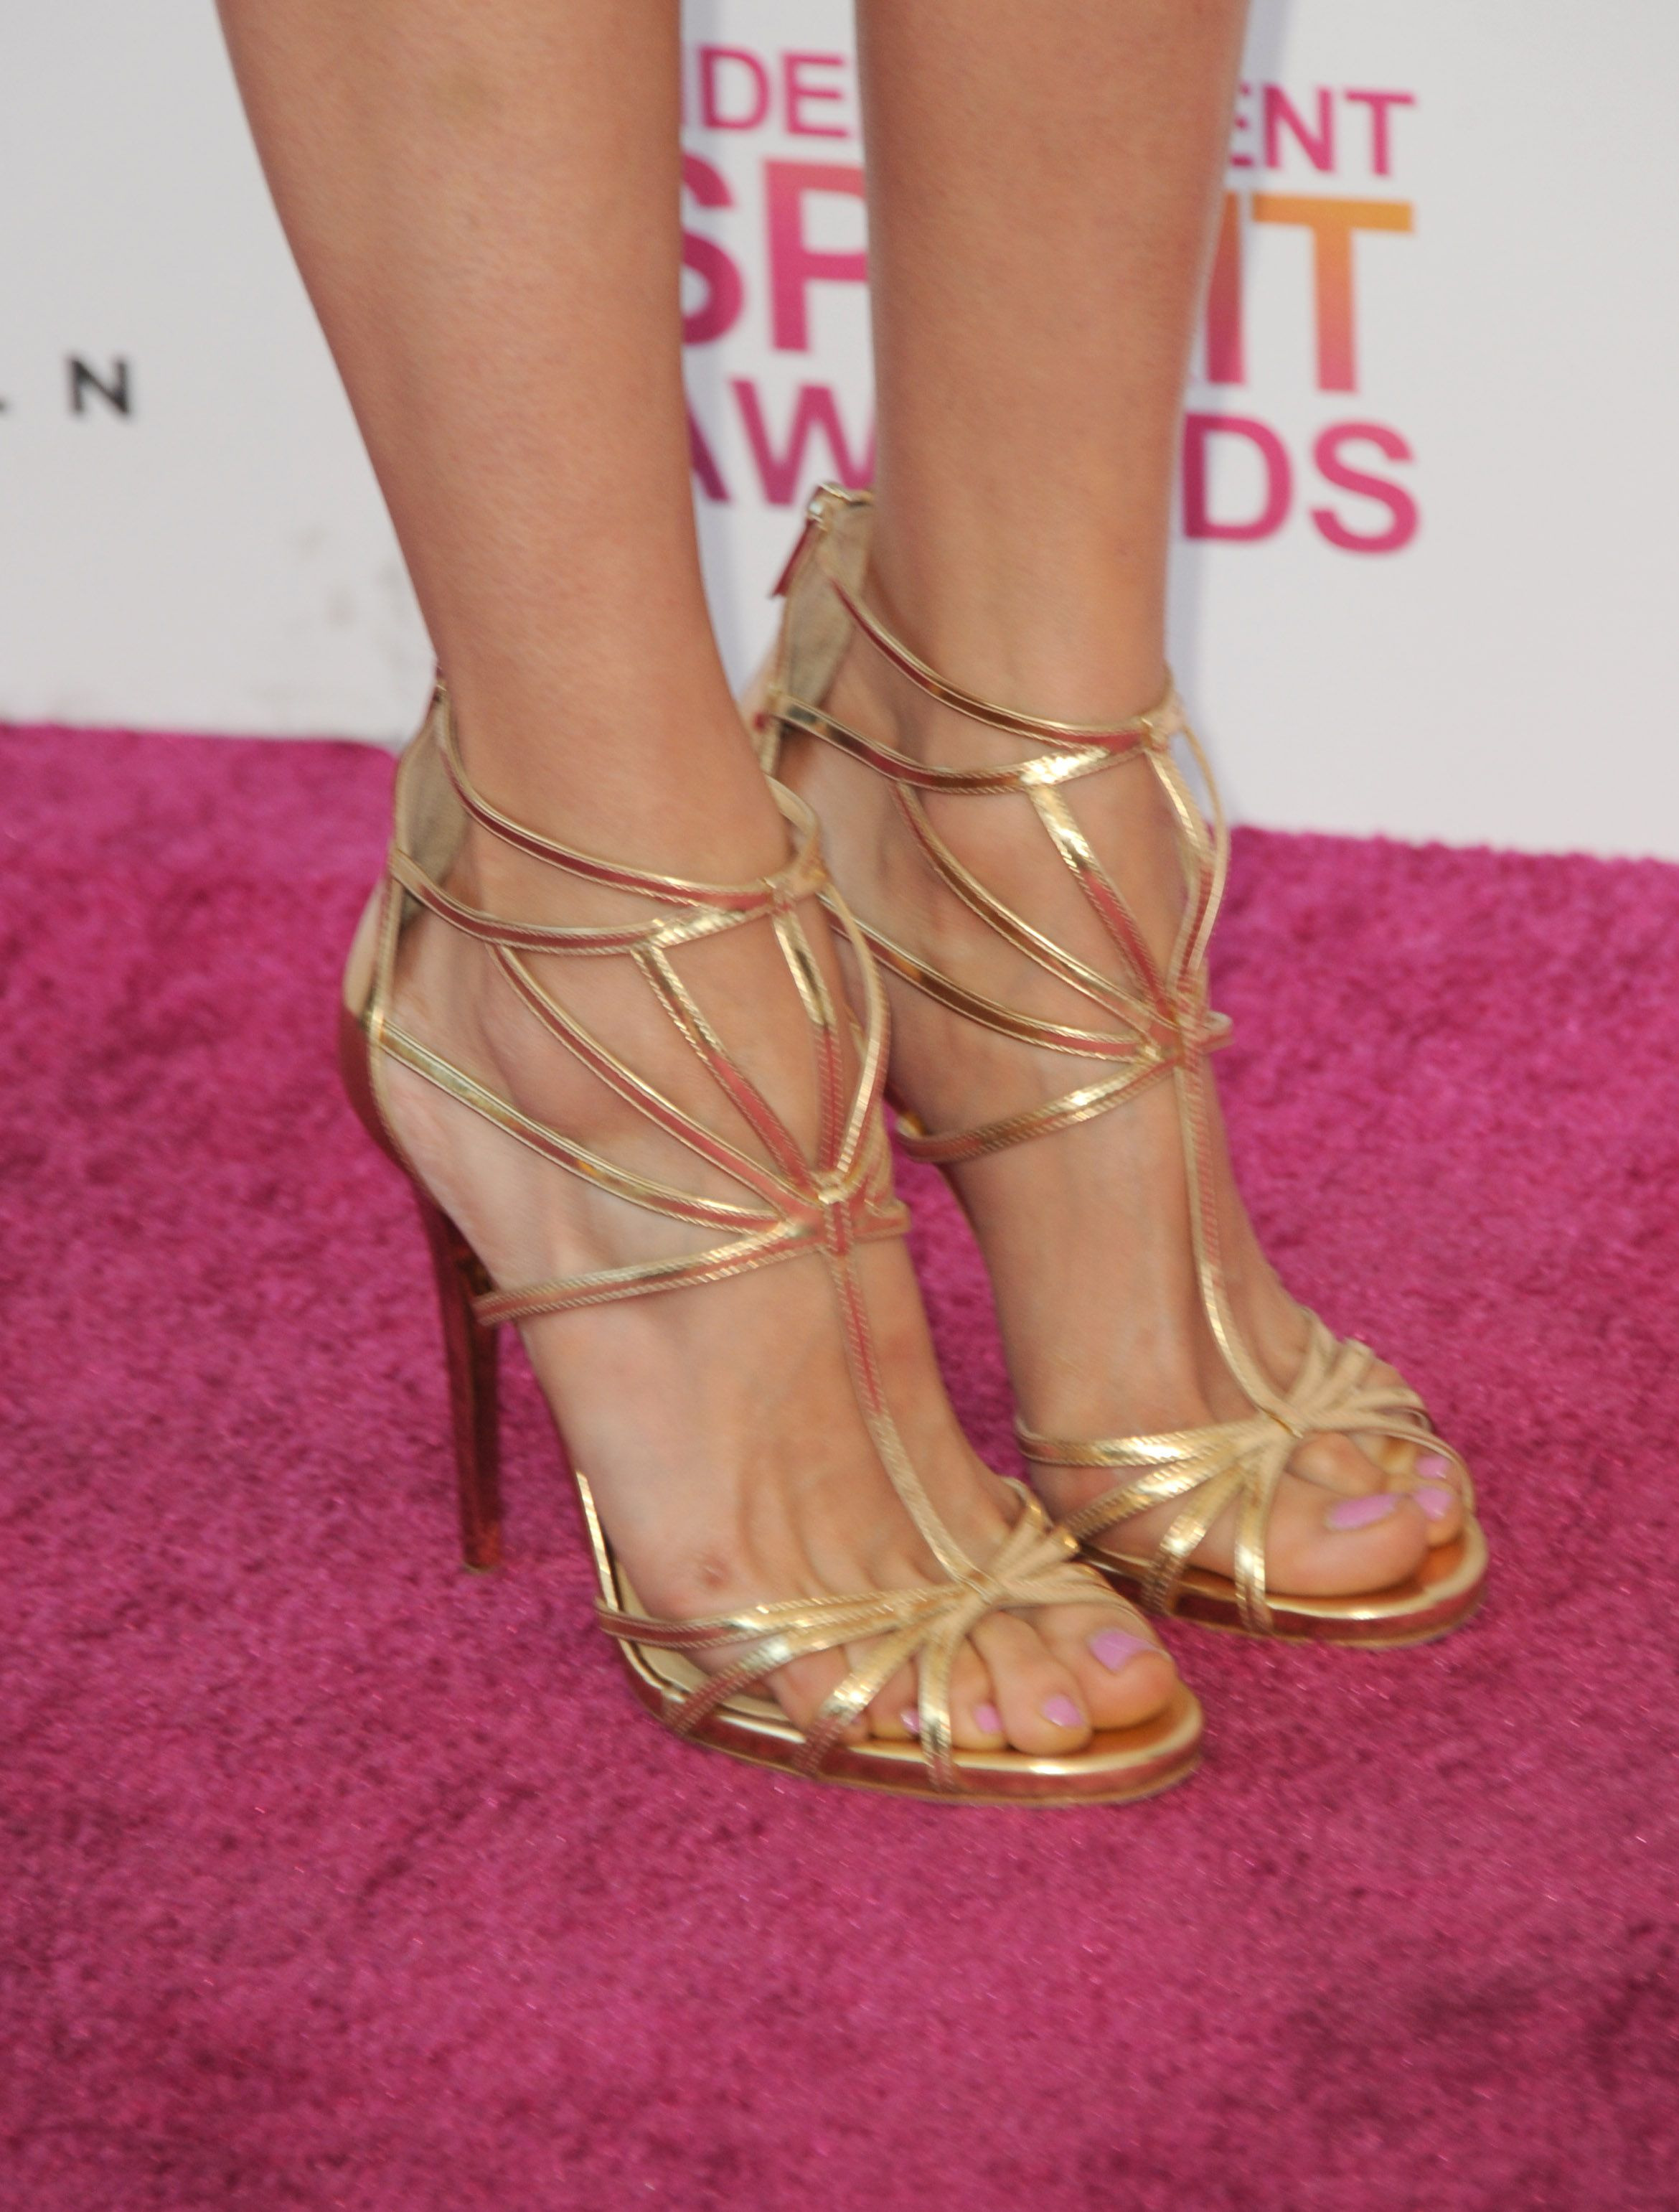 Celebrities With Foot Fetishes - rebelcircus.com